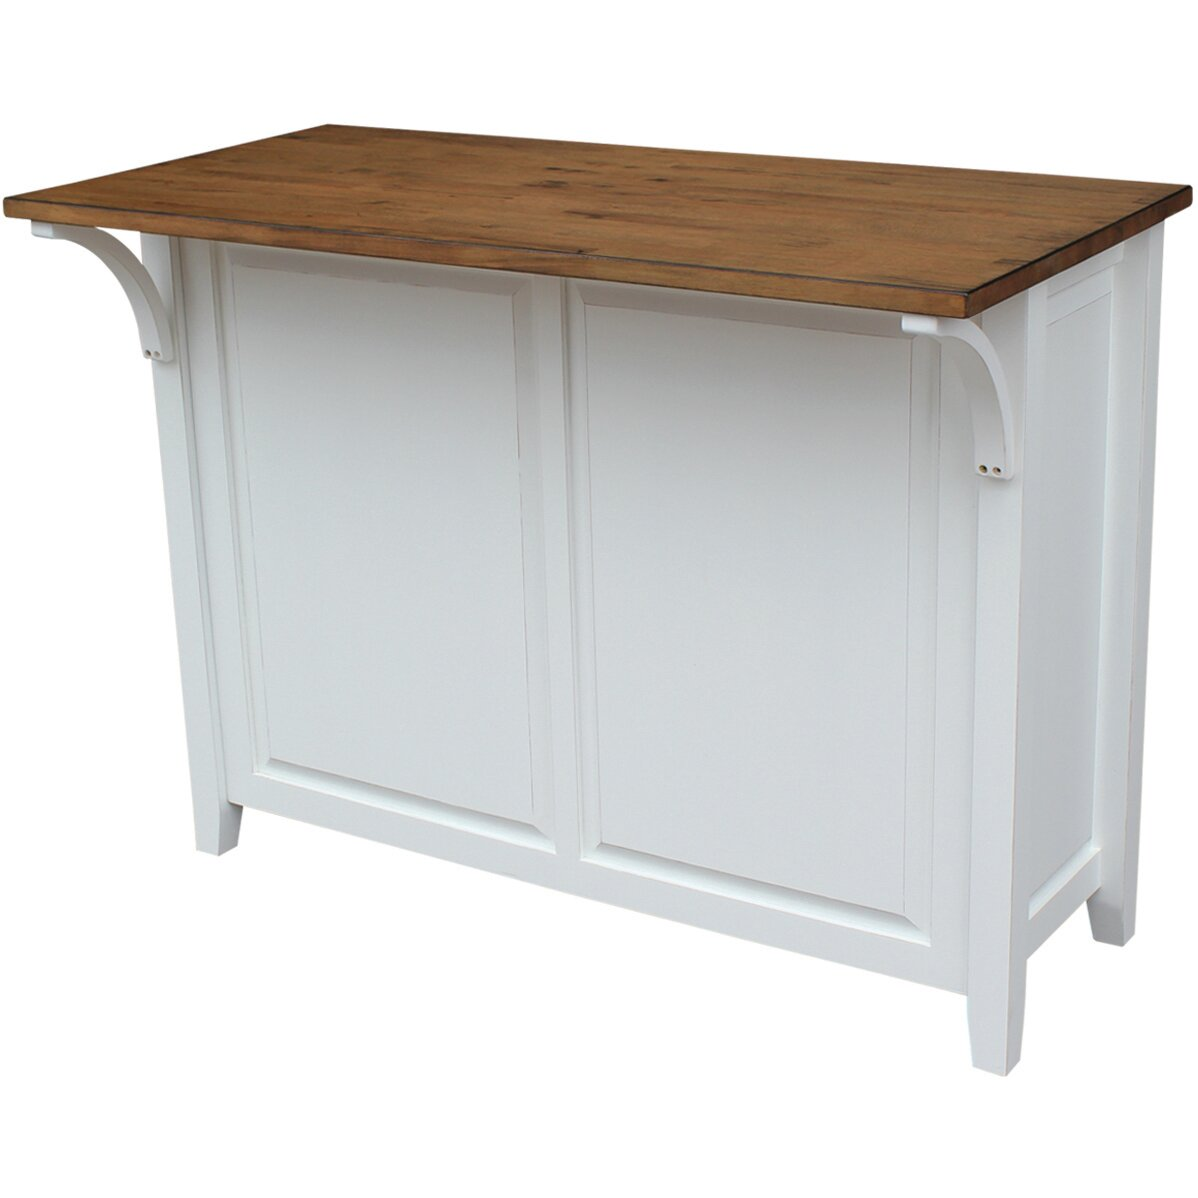 Kitchen Island Furniture: Just Cabinets Belmont Kitchen Island